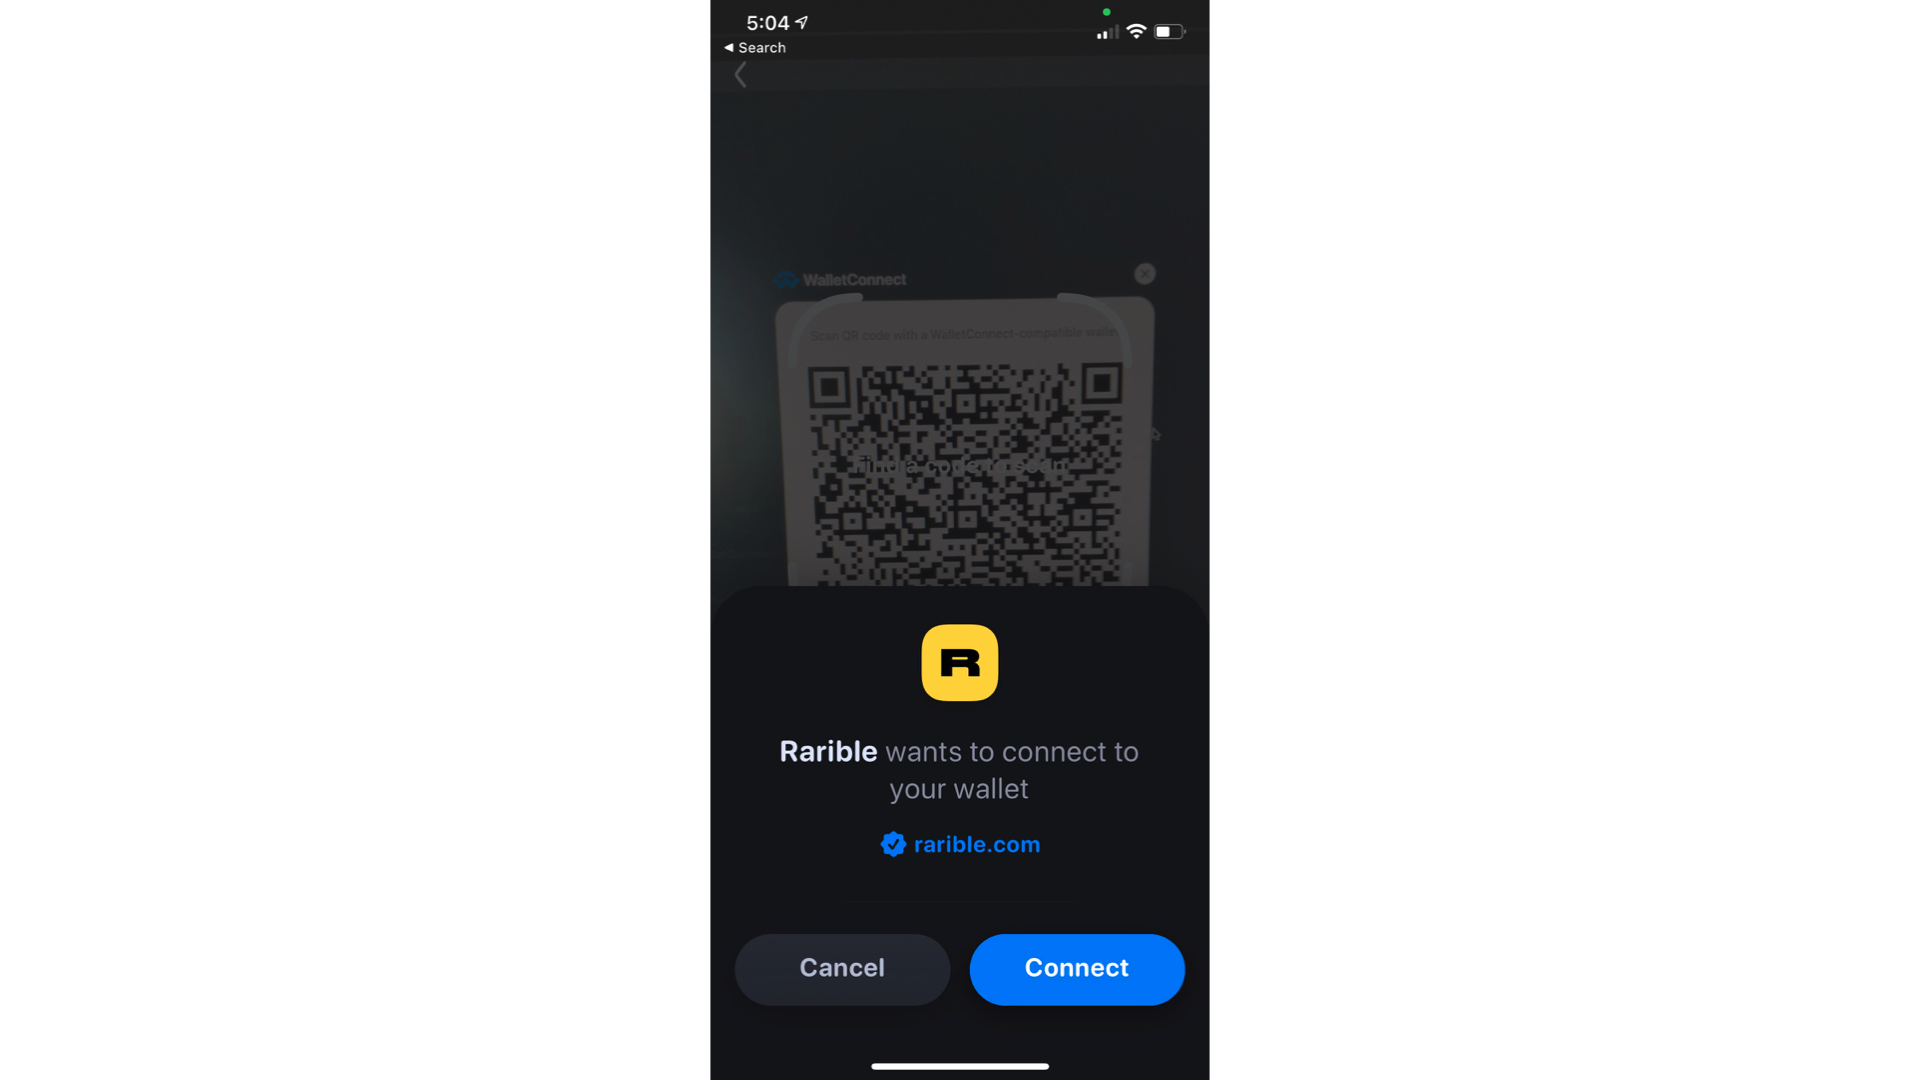 The screen that connects rarible to an Ethereum wallet